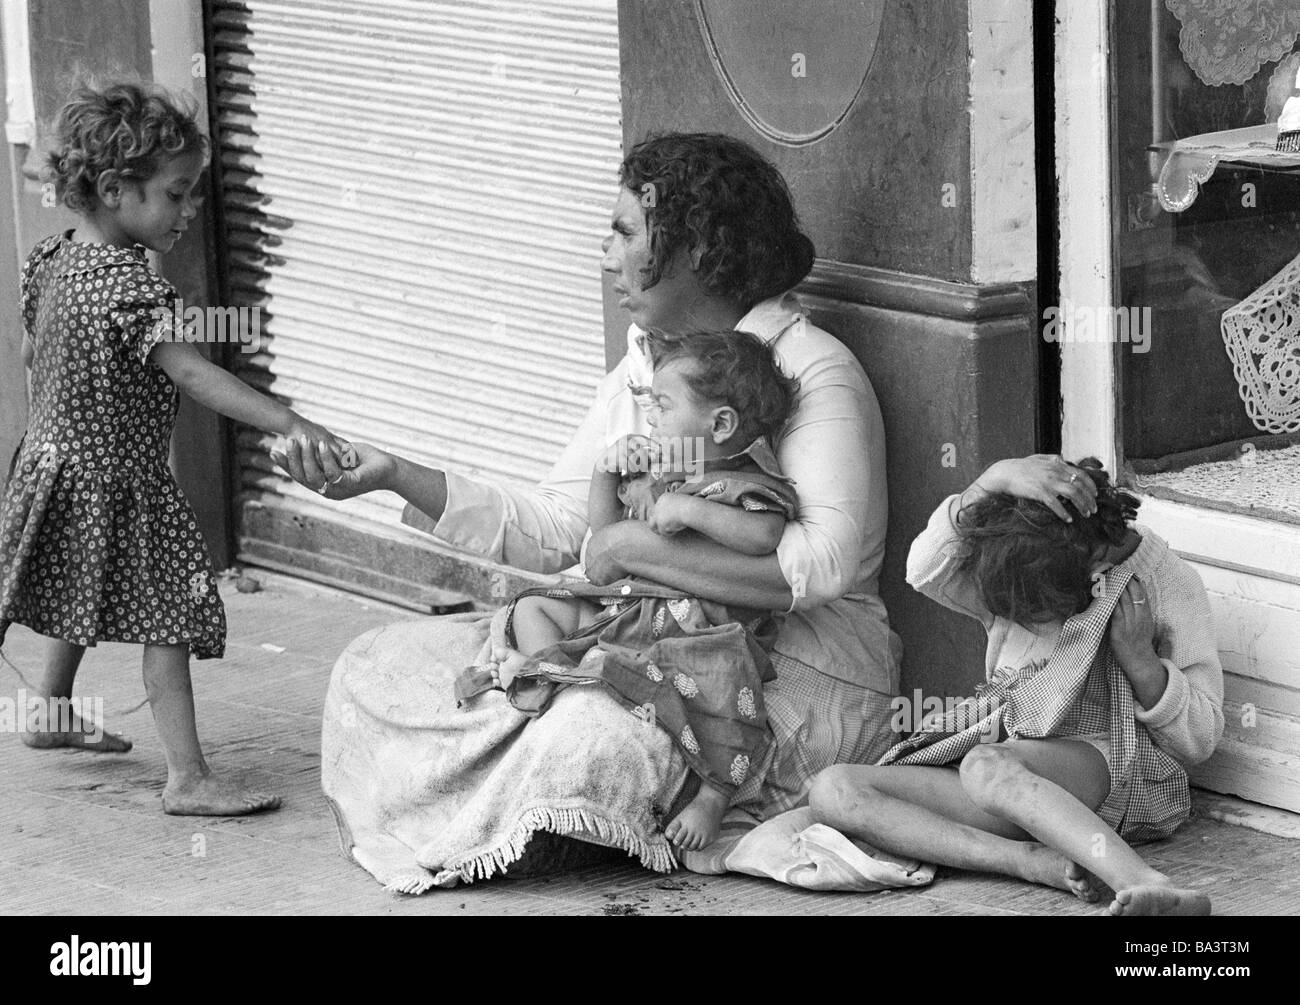 Seventies, black and white photo, people, poorness, beggar-woman sits at the roadside with three children, a girl - Stock Image